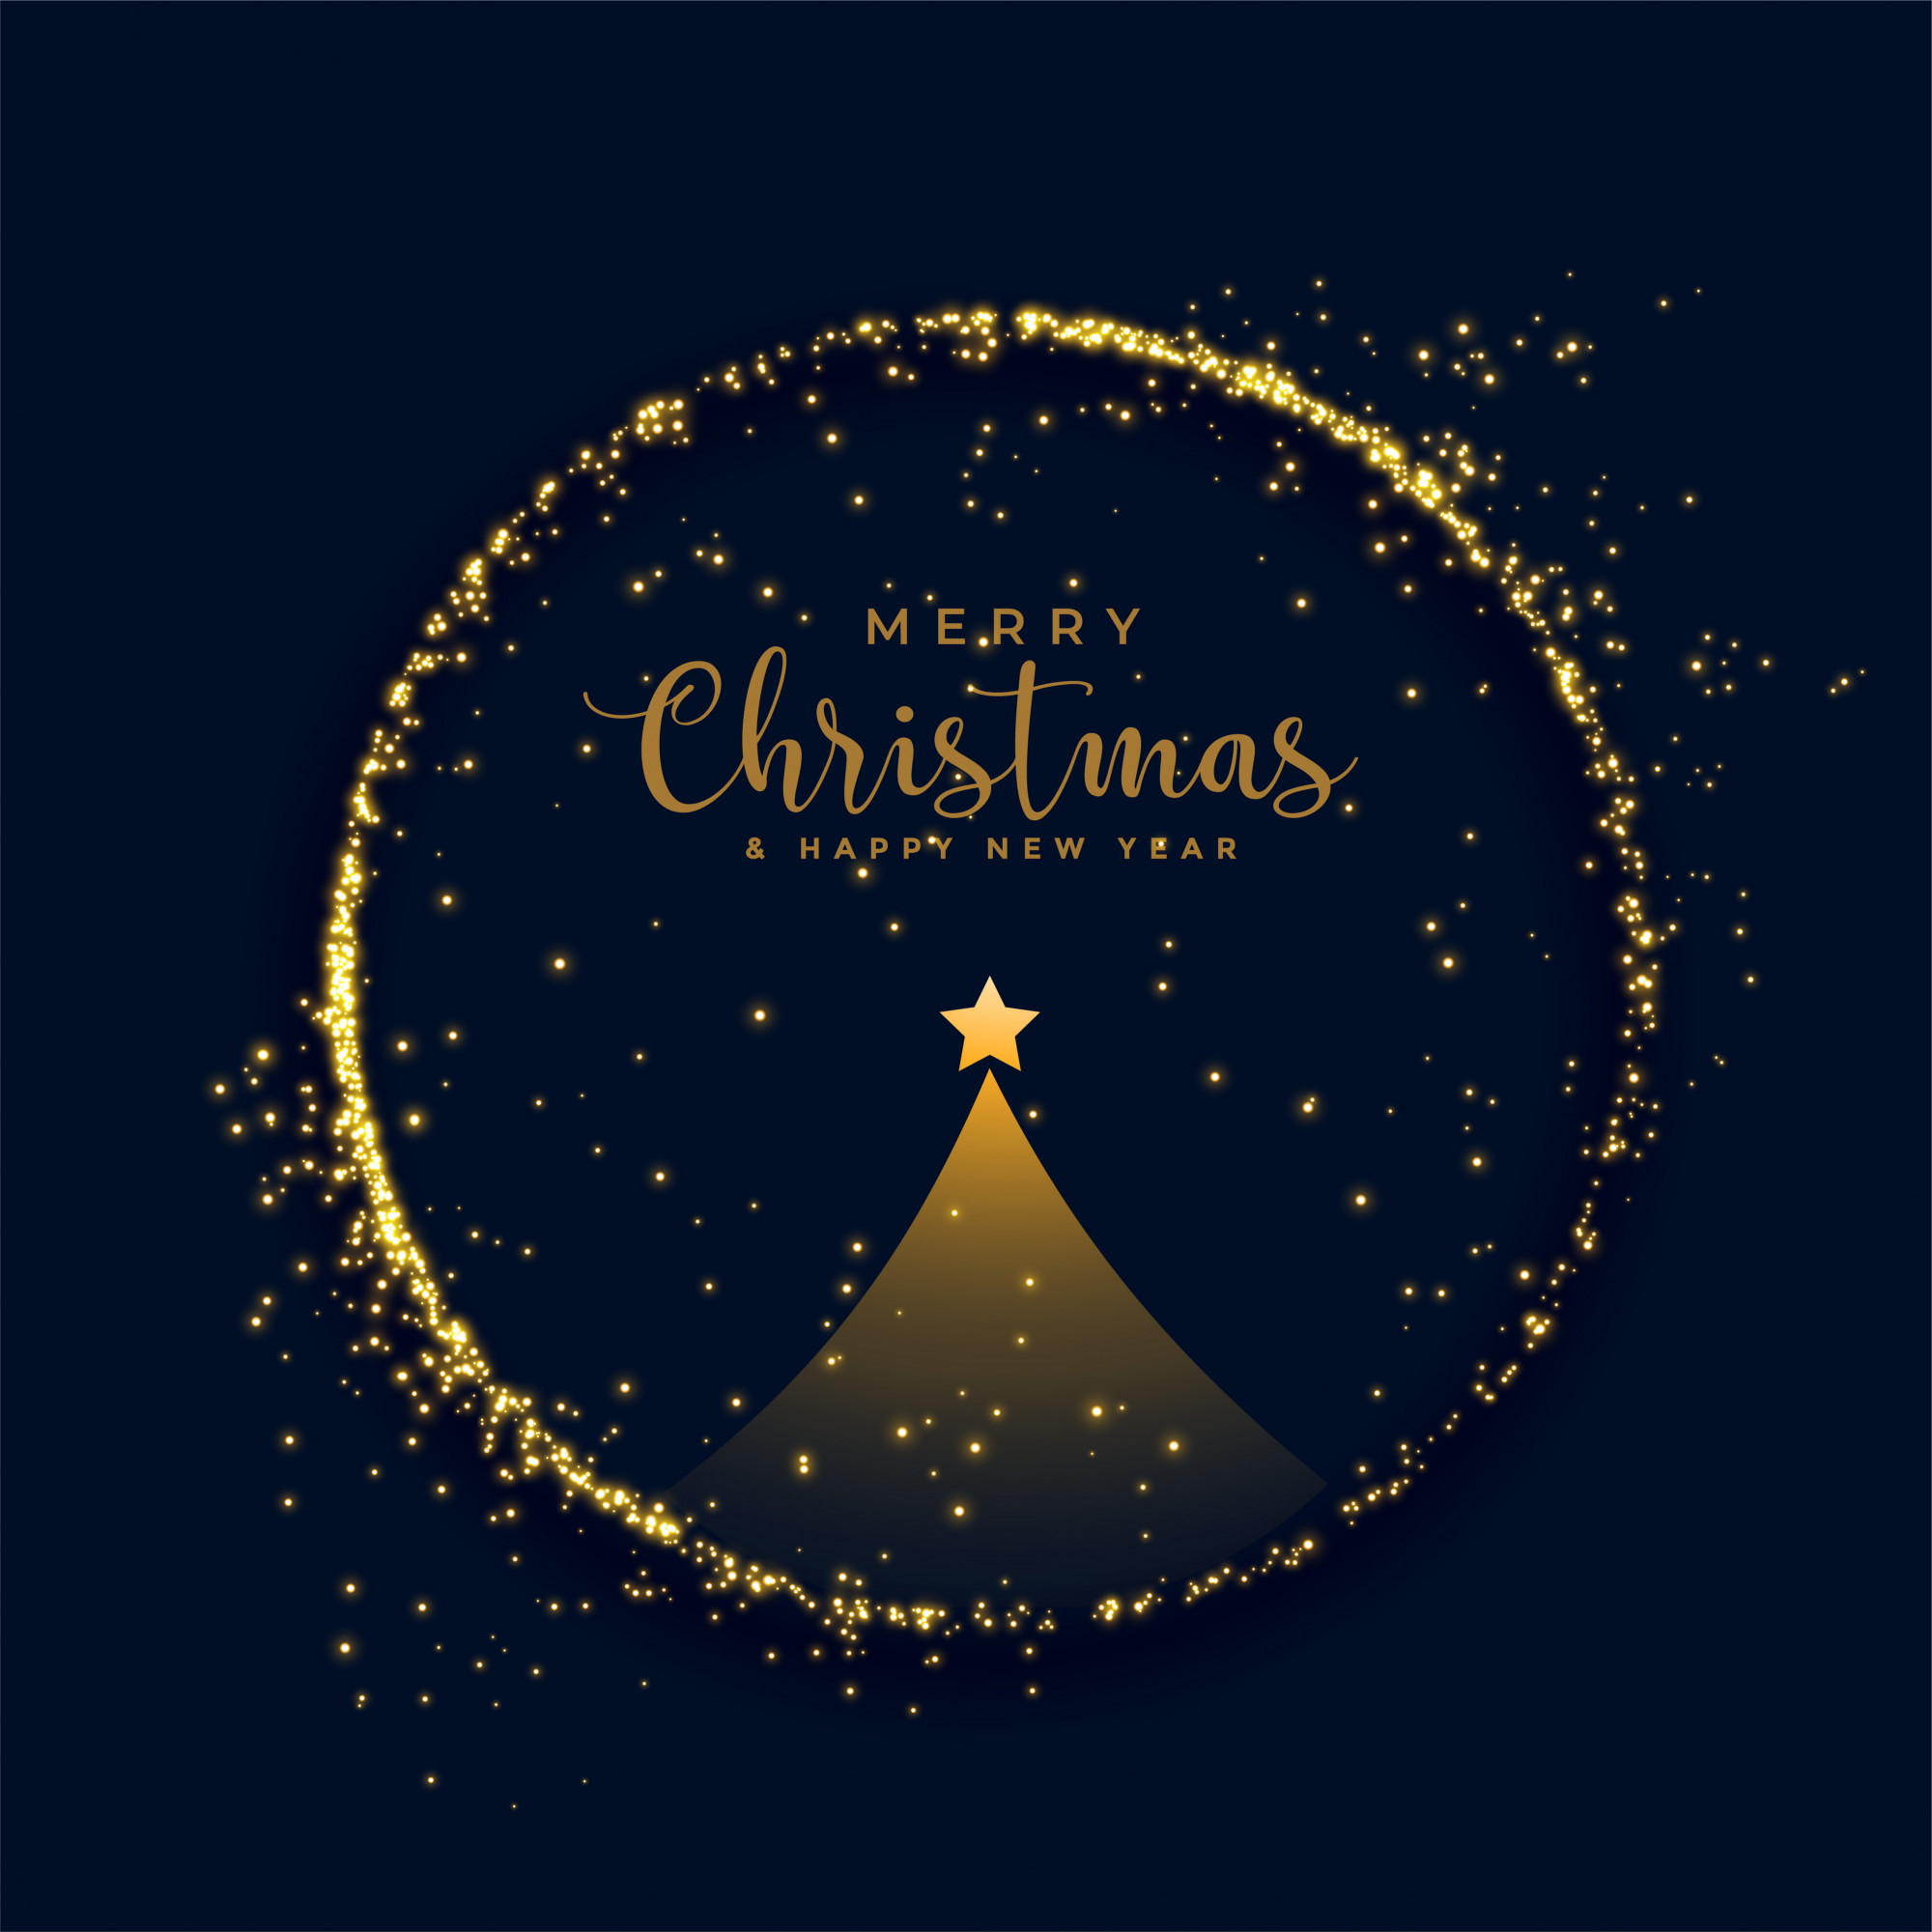 Shiny merry christmas tree golden particles background